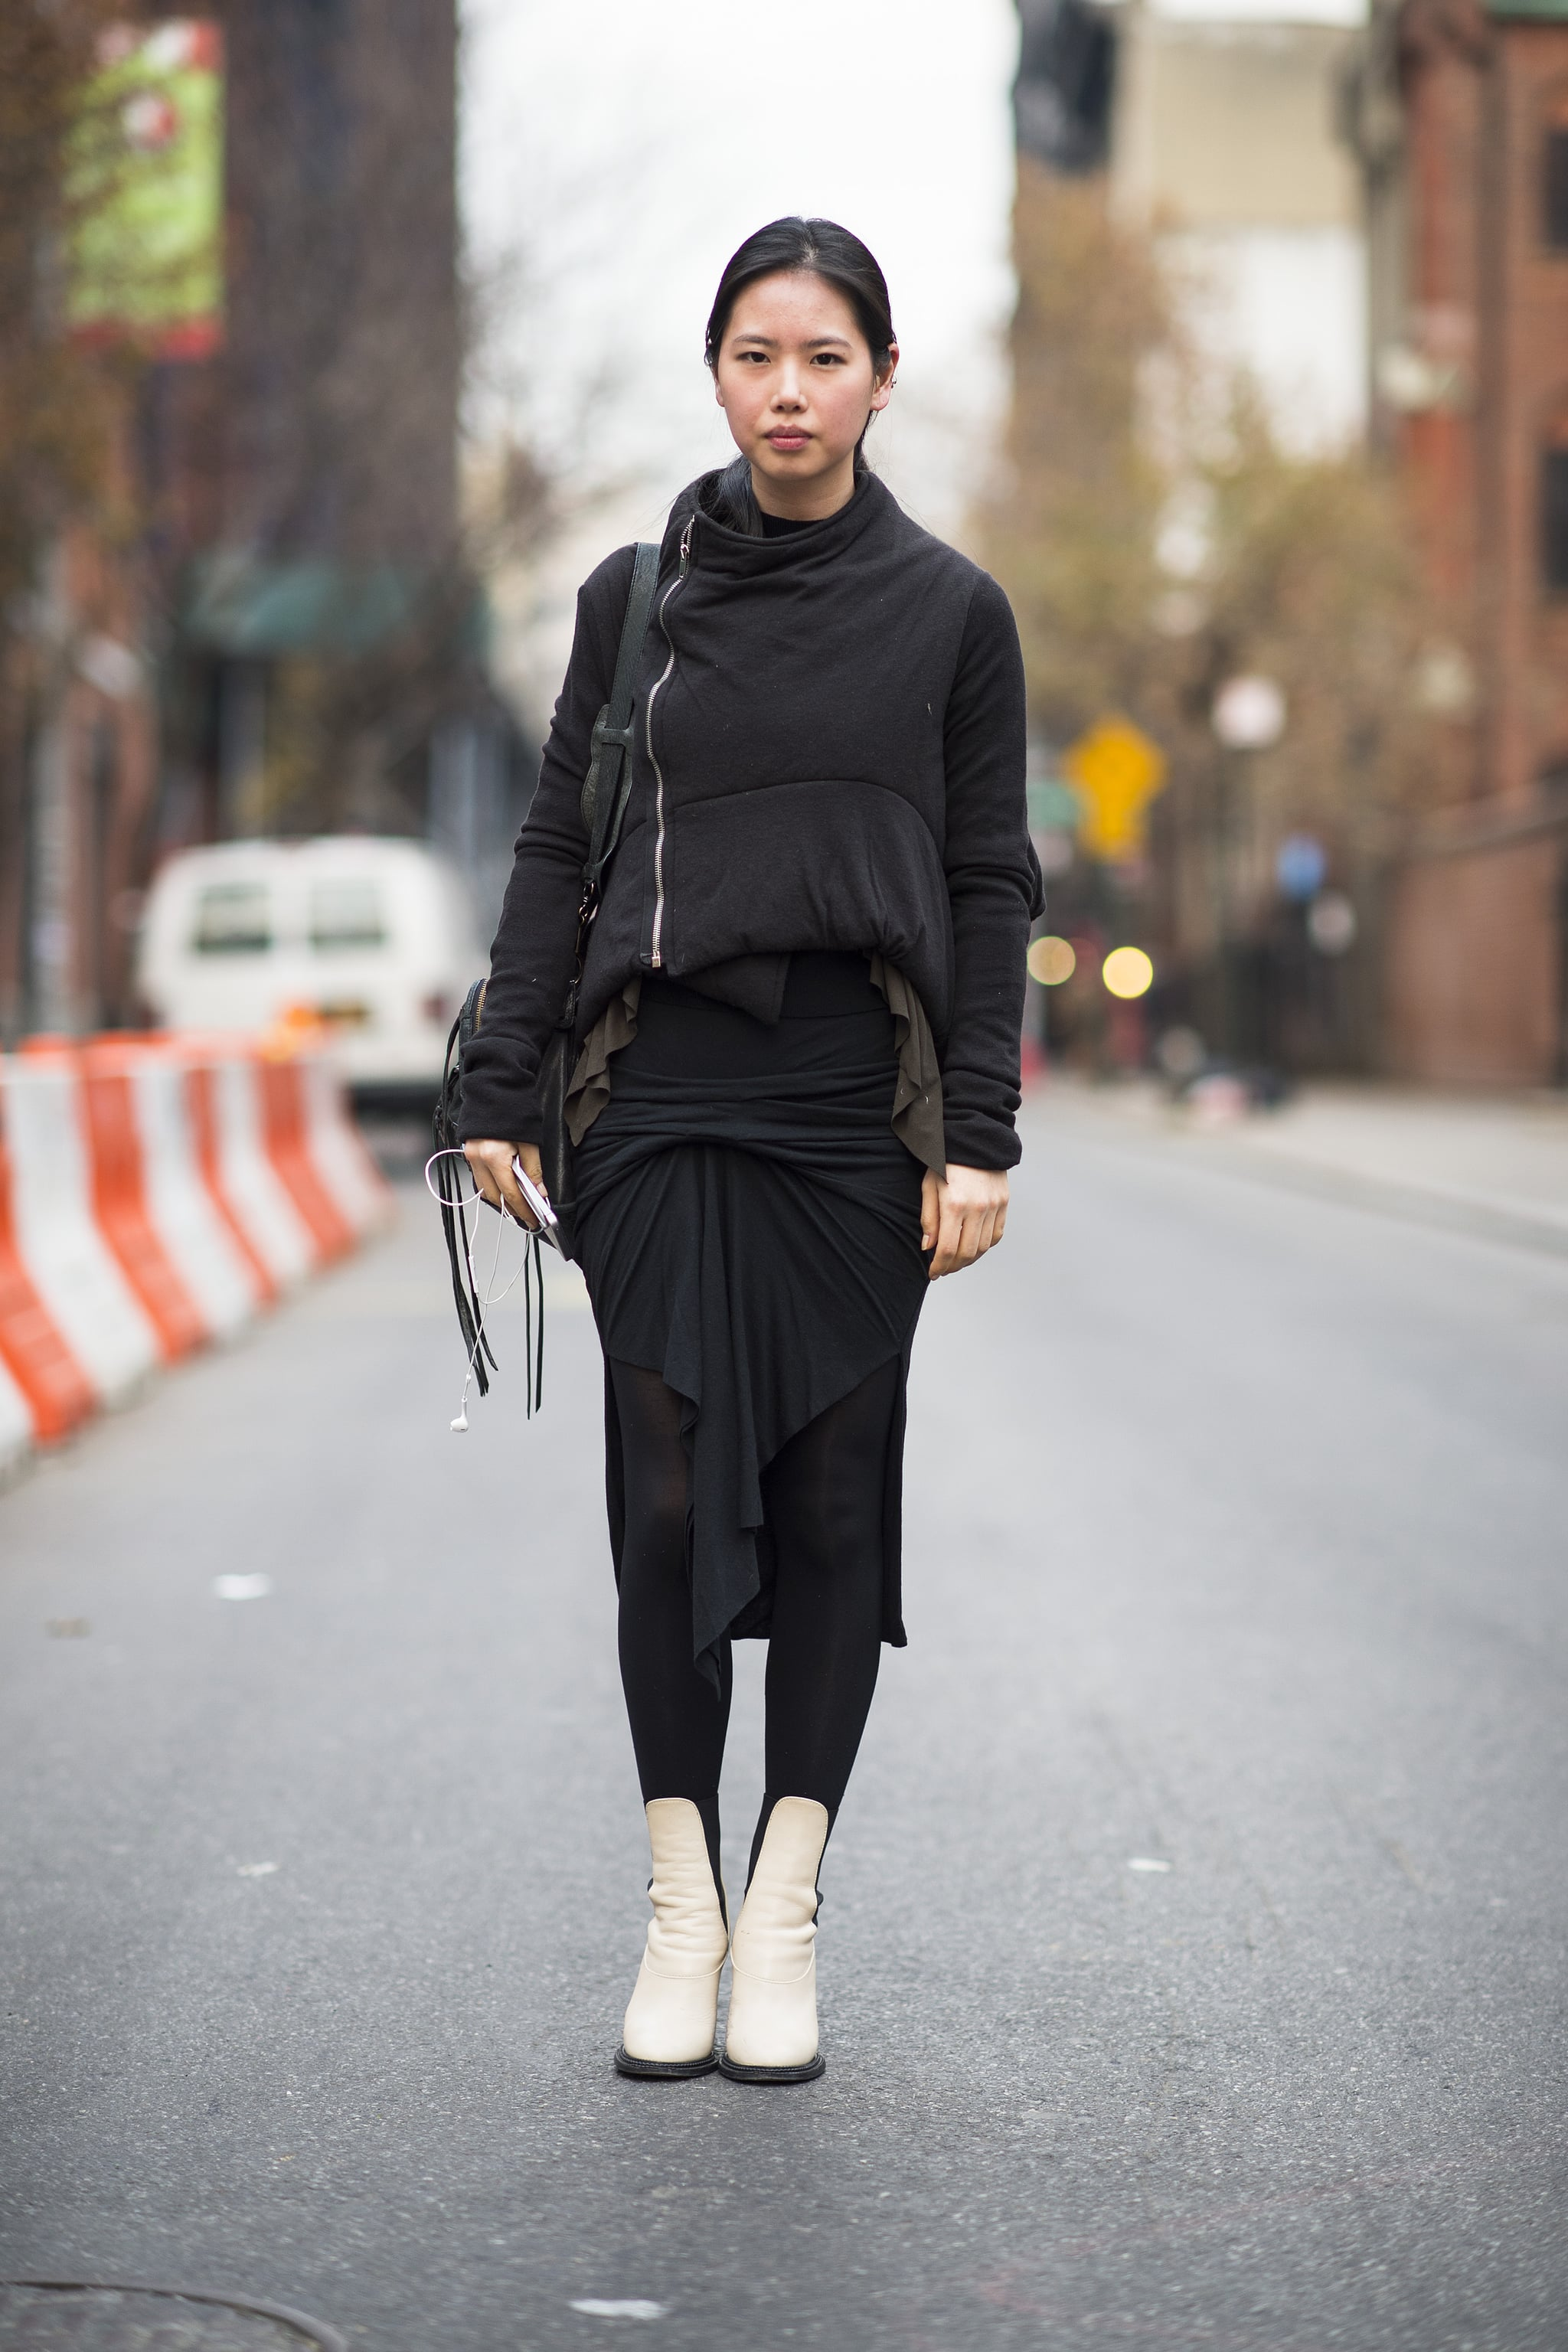 Bundling up can look downright artistic with the right draping.  Source: Le 21ème | Adam Katz Sinding